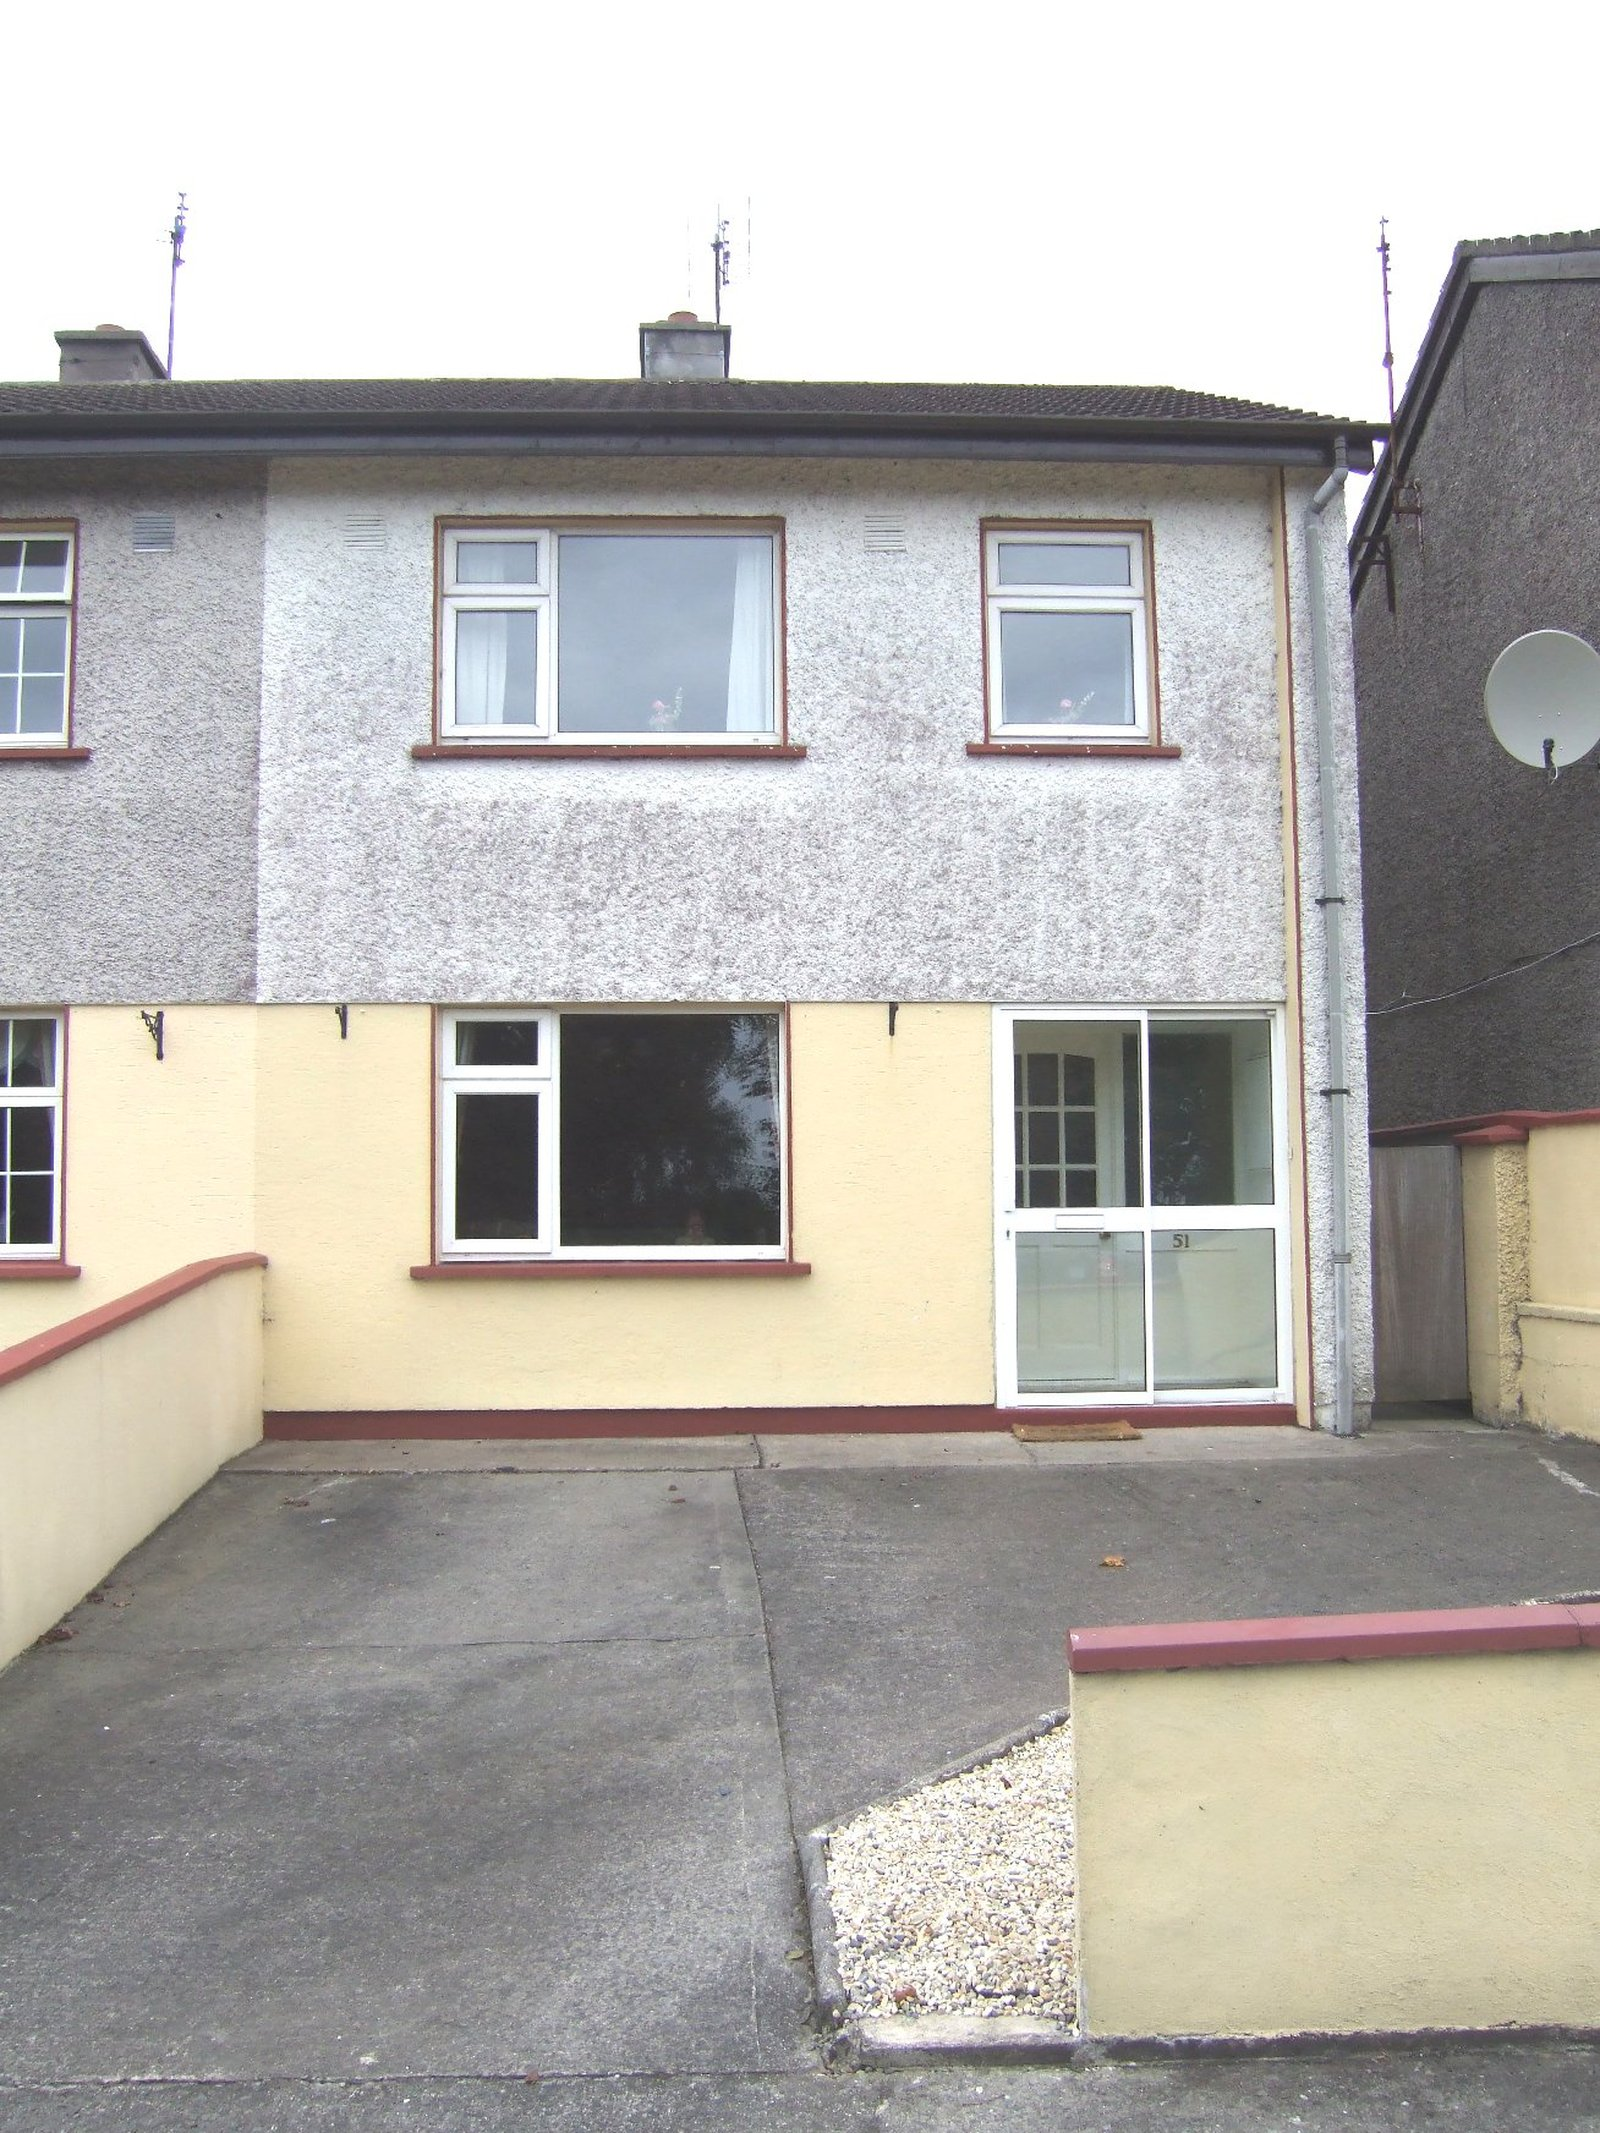 No. 51 Riverdale Court, Castlebar, Co. Mayo